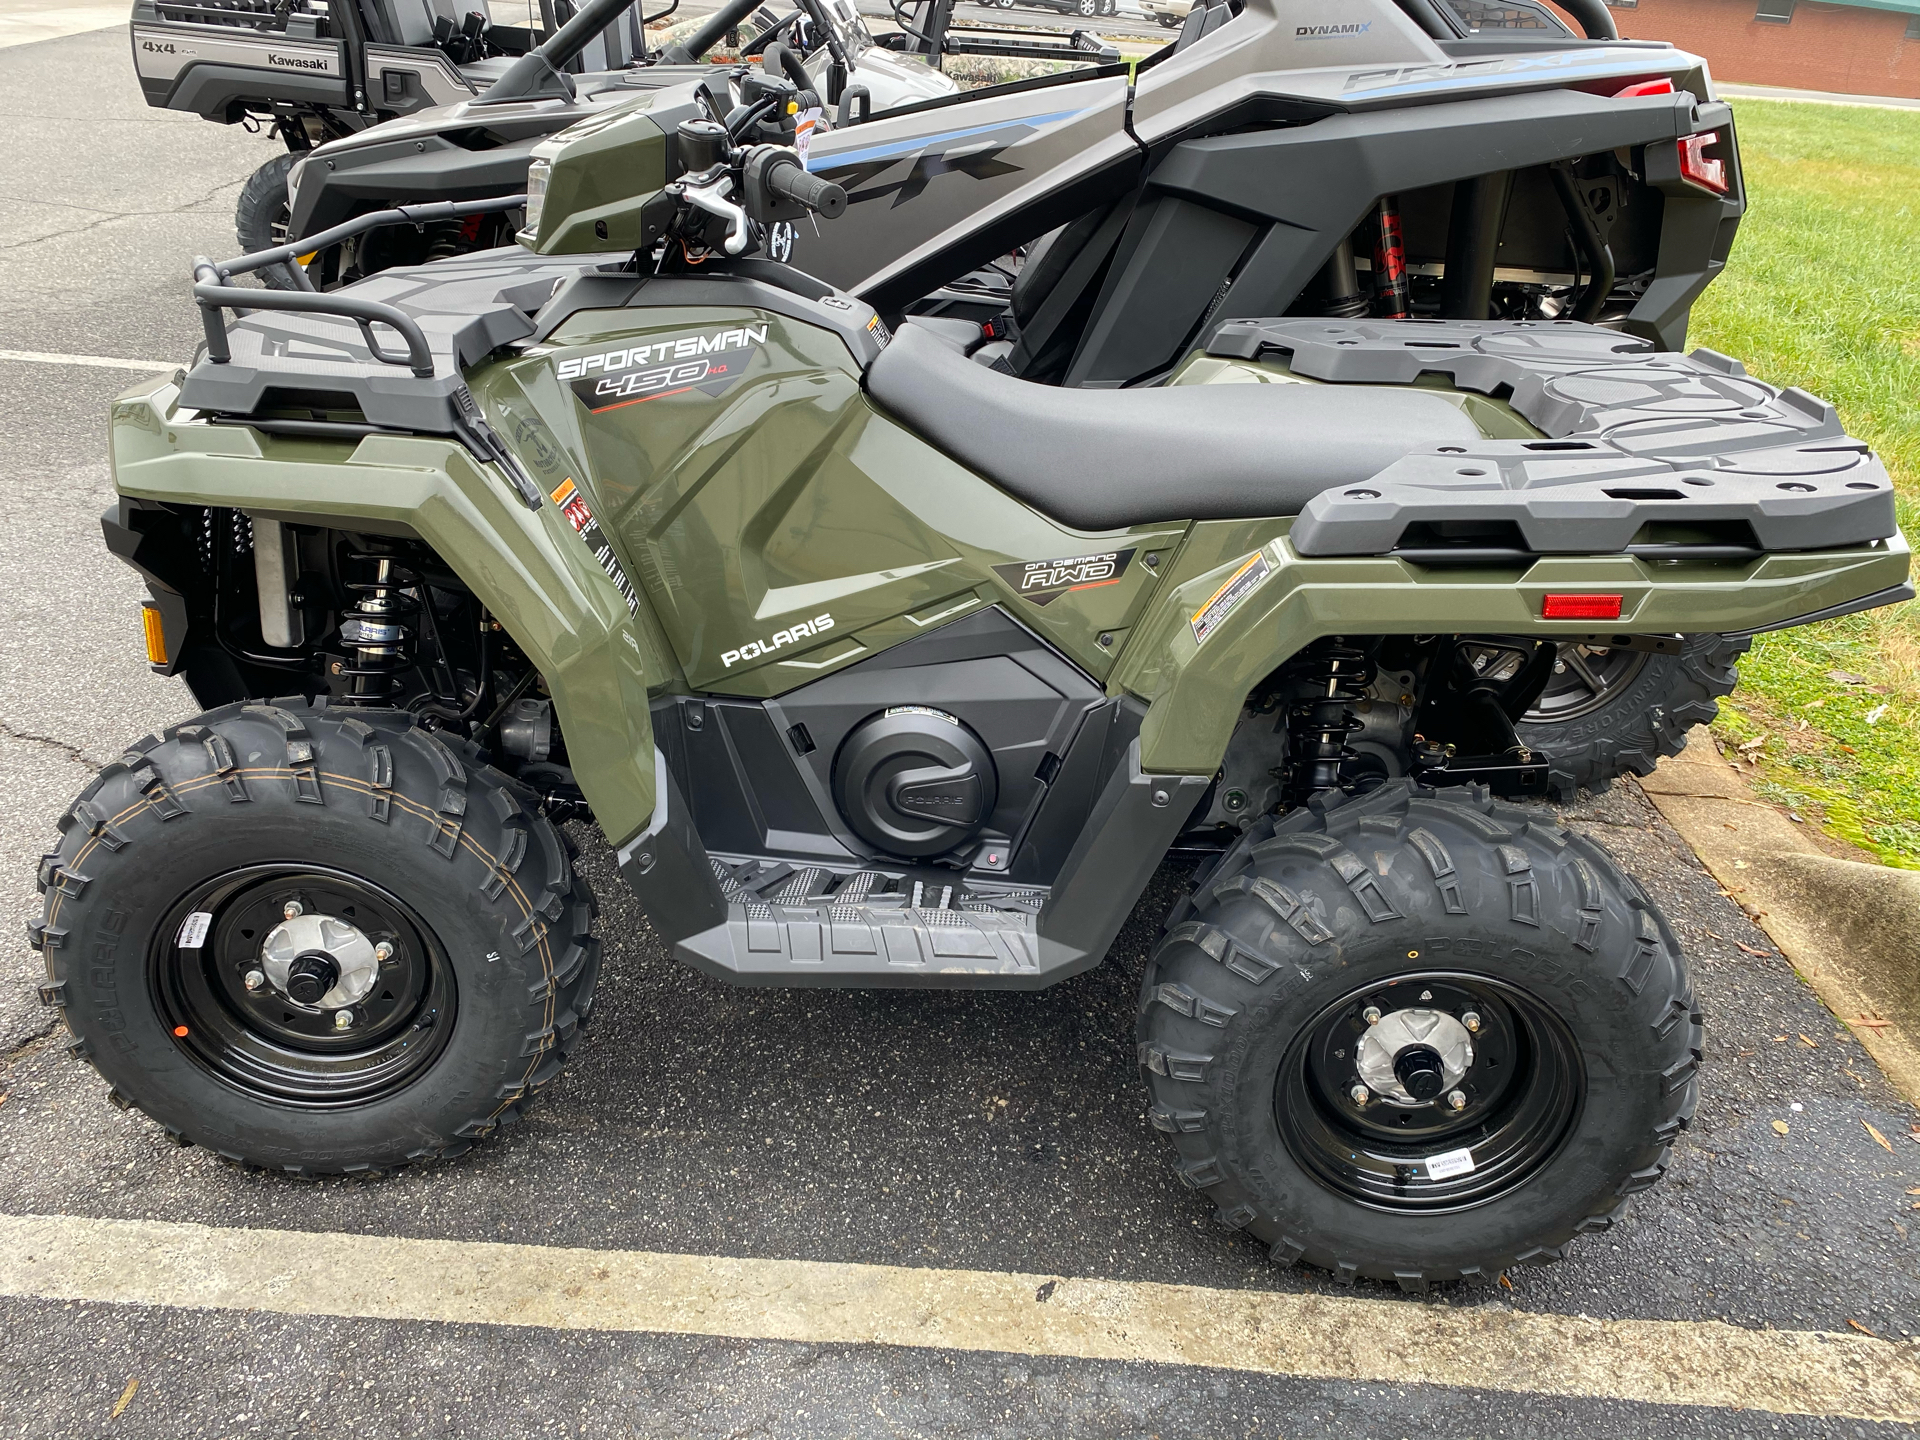 2021 Polaris Sportsman 450 H.O. in Statesville, North Carolina - Photo 1